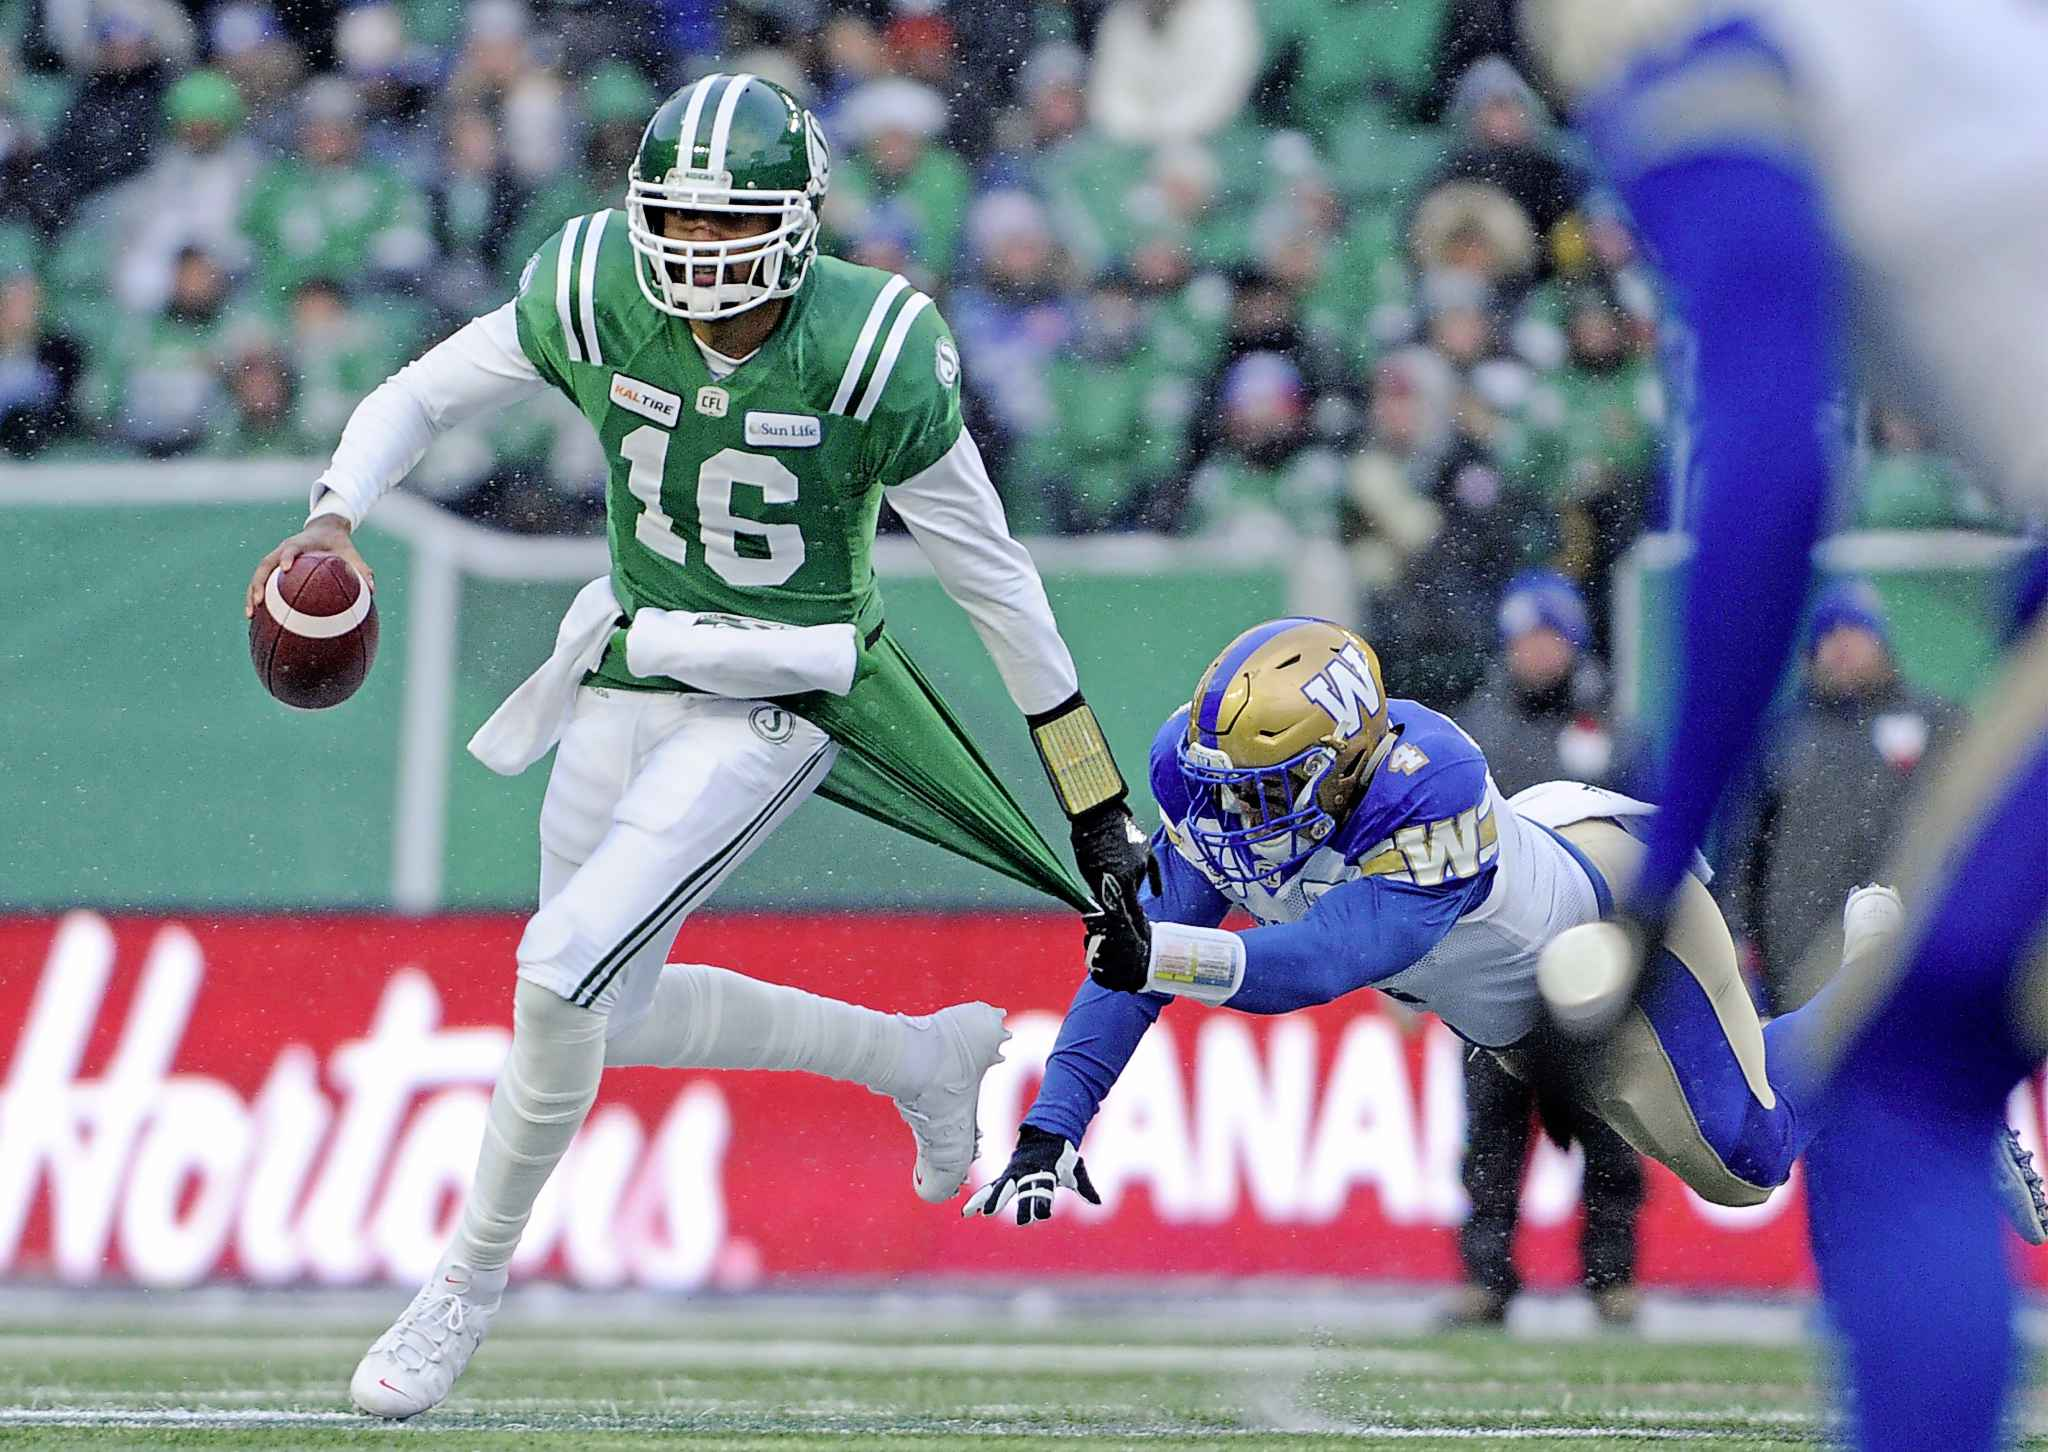 Winnipeg Blue Bombers linebacker Adam Bighill, right, chases down Saskatchewan Roughriders quarterback Brandon Bridge. Bighill's football, soccer and powerlifting coach at Montesano High School, said he had a never-ending motor, the kind of energy-for-days effort Bighill still displays on the football field.